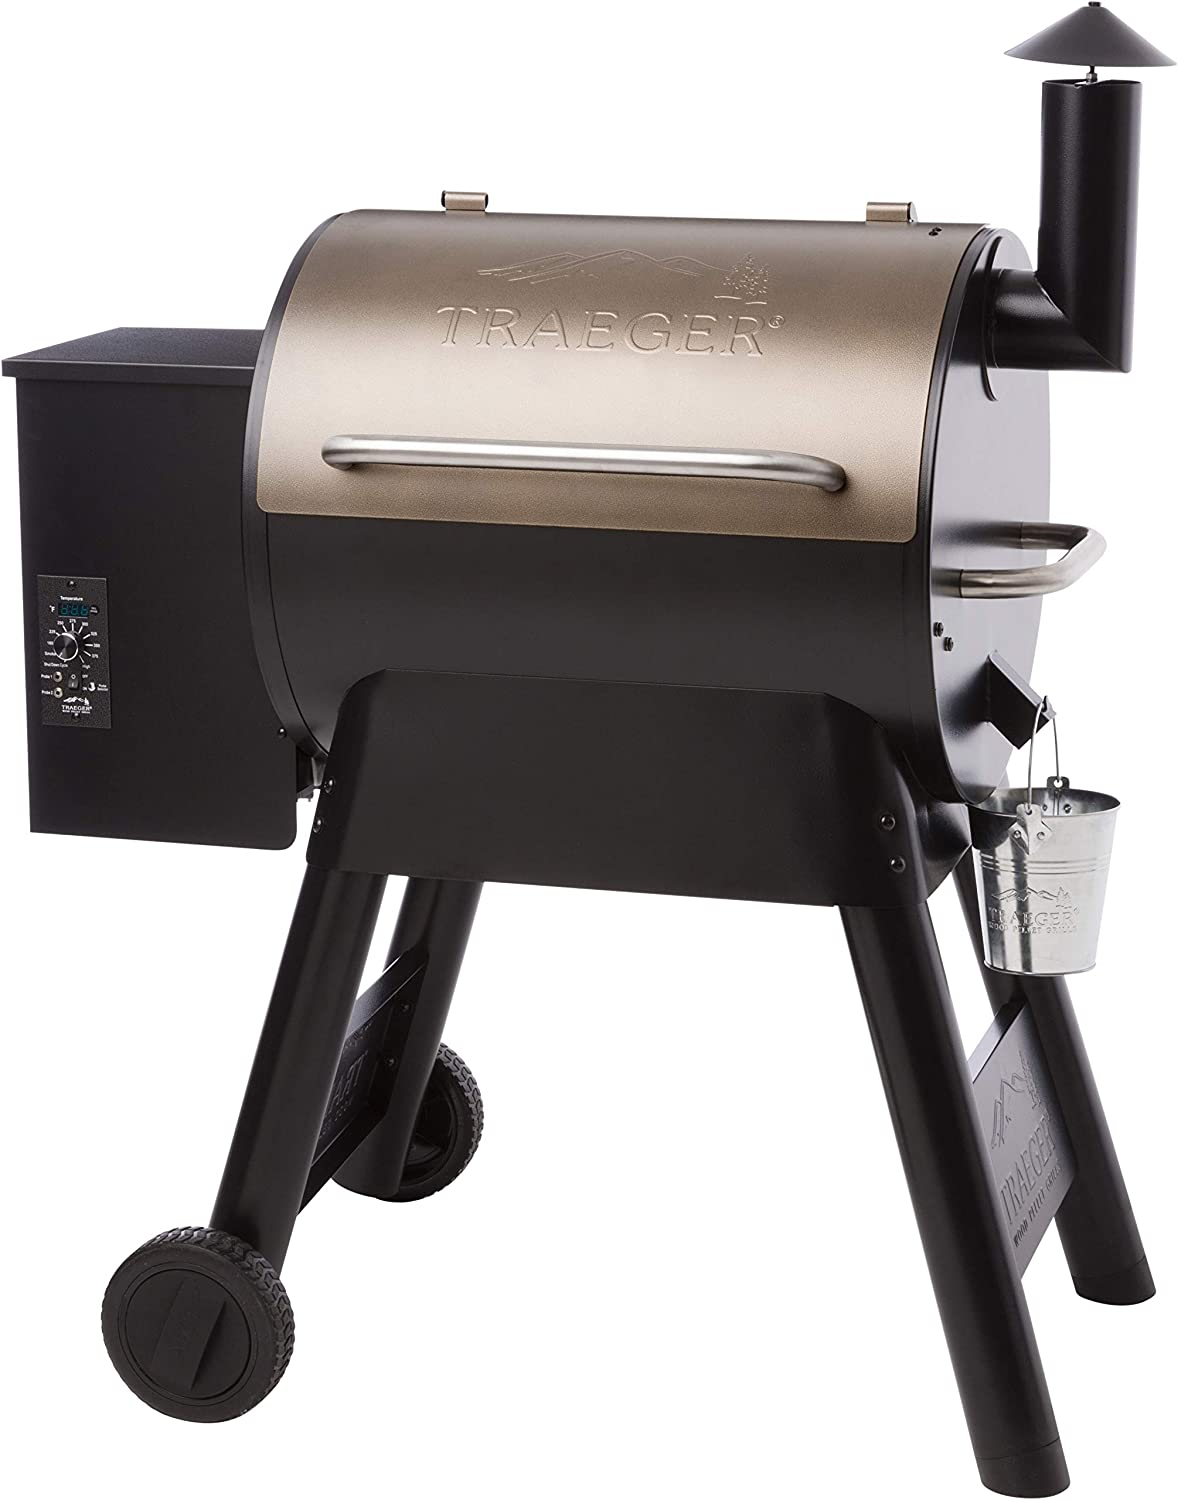 Traeger Grills Pro Series 22 Electric Wood Pellet Grill and Smoker